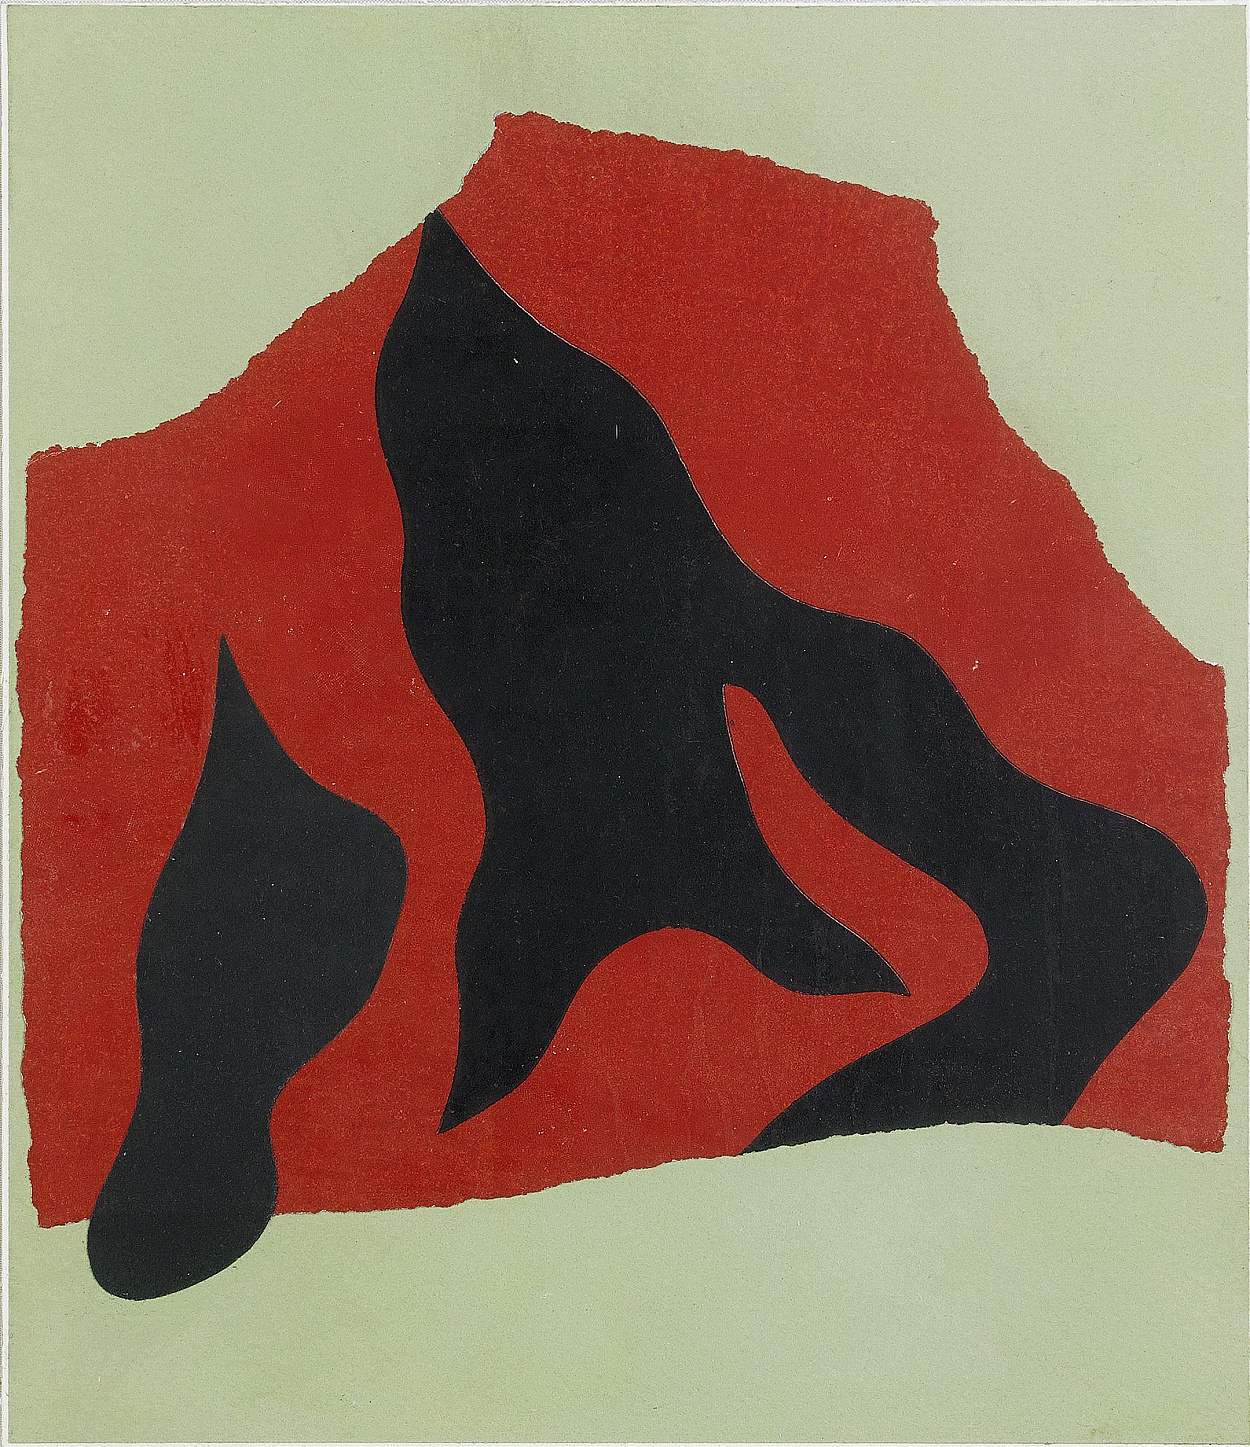 Jean Arp, Collage